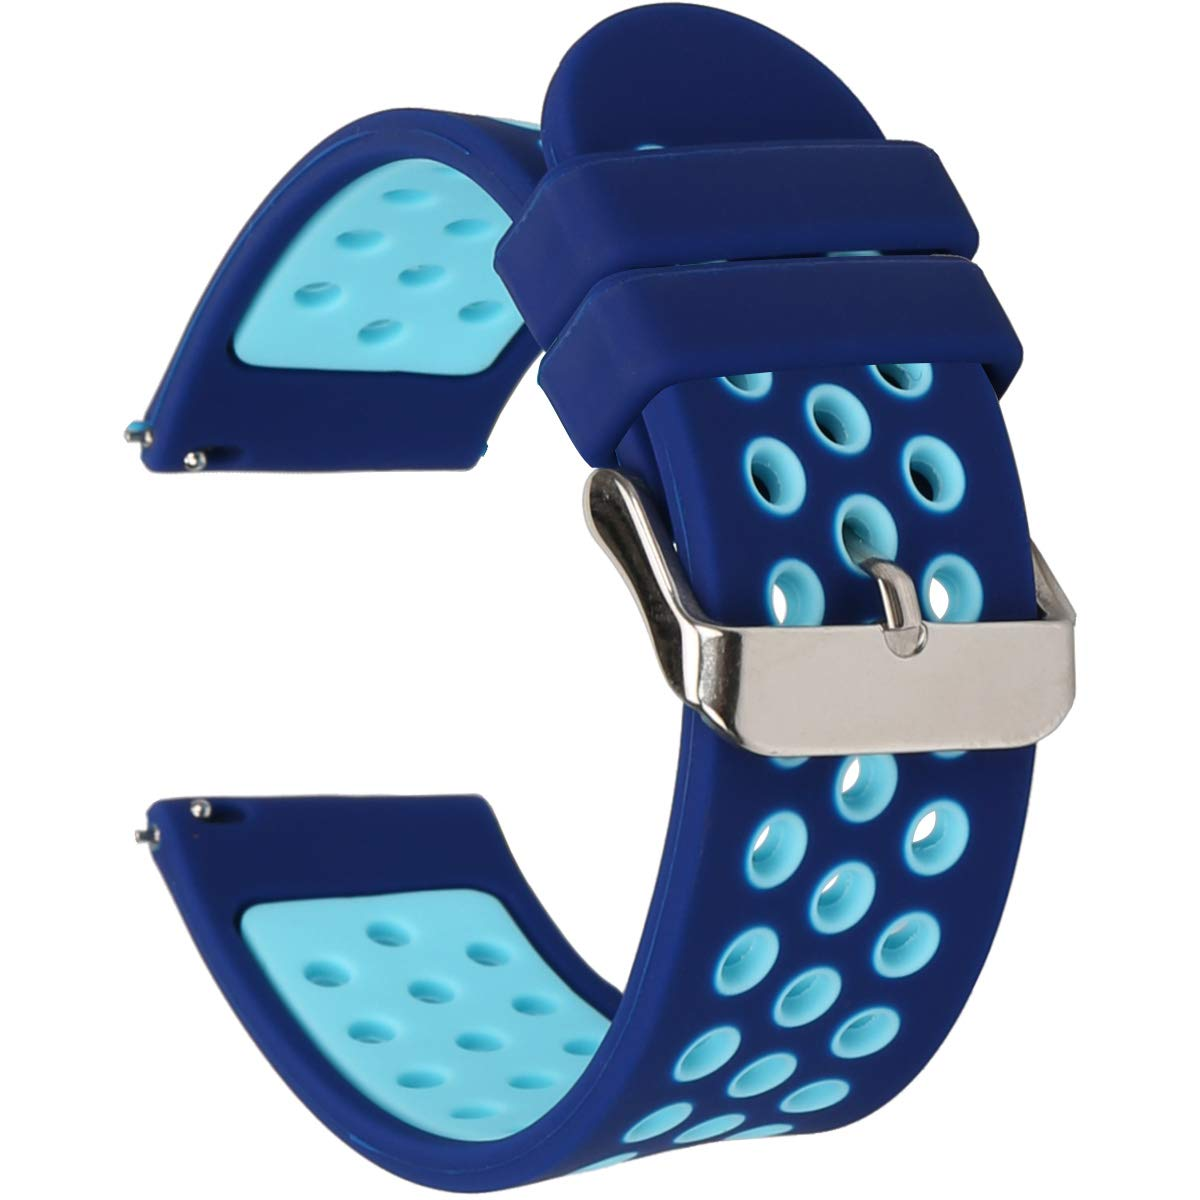 Universal 18mm 20mm 22mm 24mm Width Silicone Watch Band Replacement (20mm, Blue) by wonlex